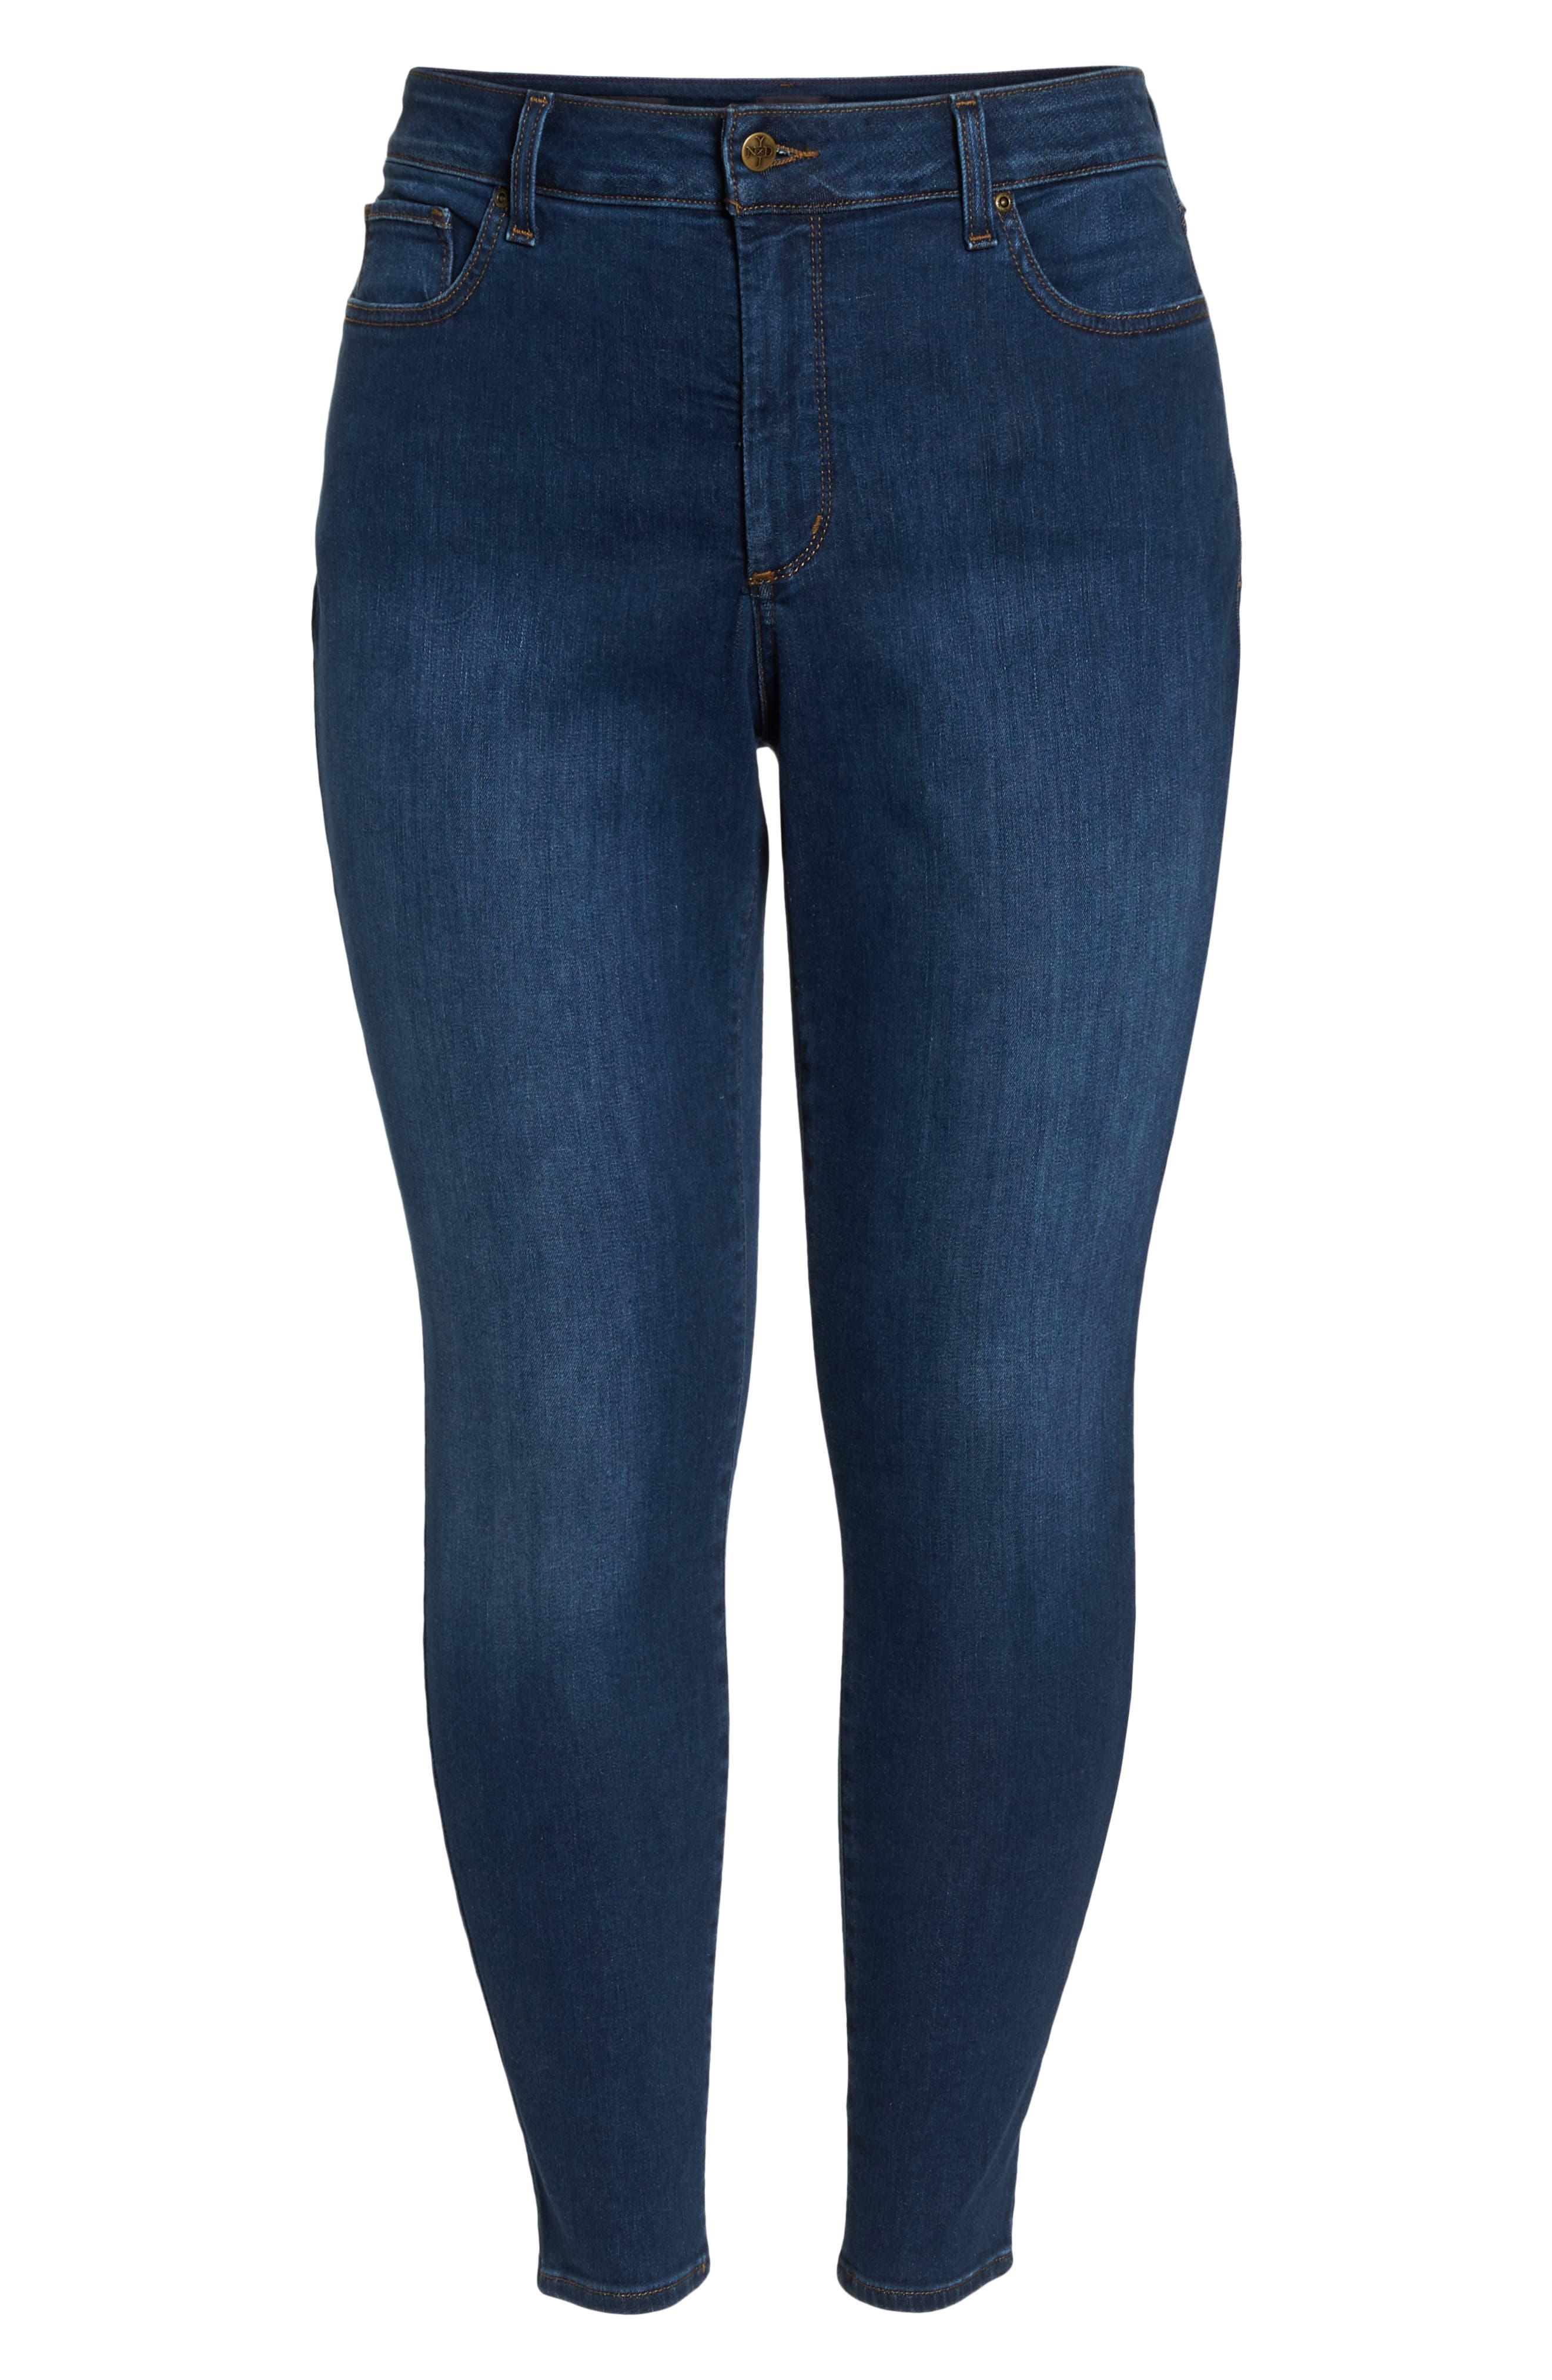 Ami Stretch Skinny Jeans,                             Alternate thumbnail 7, color,                             COOPER